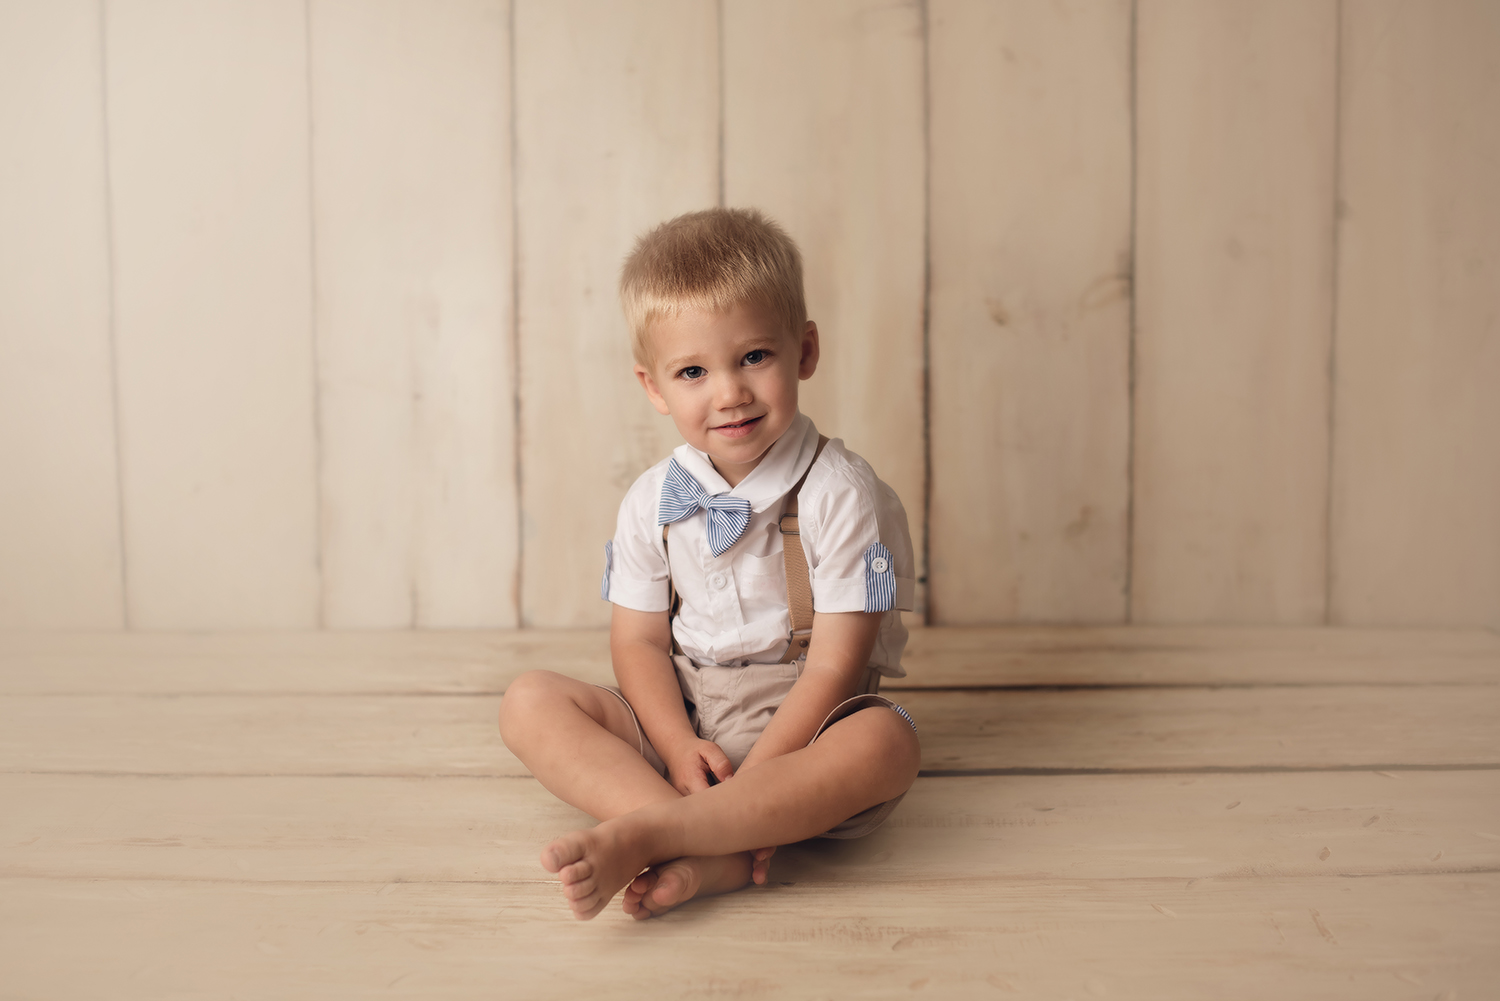 adorable-children-photos-barebabyphotography.jpg